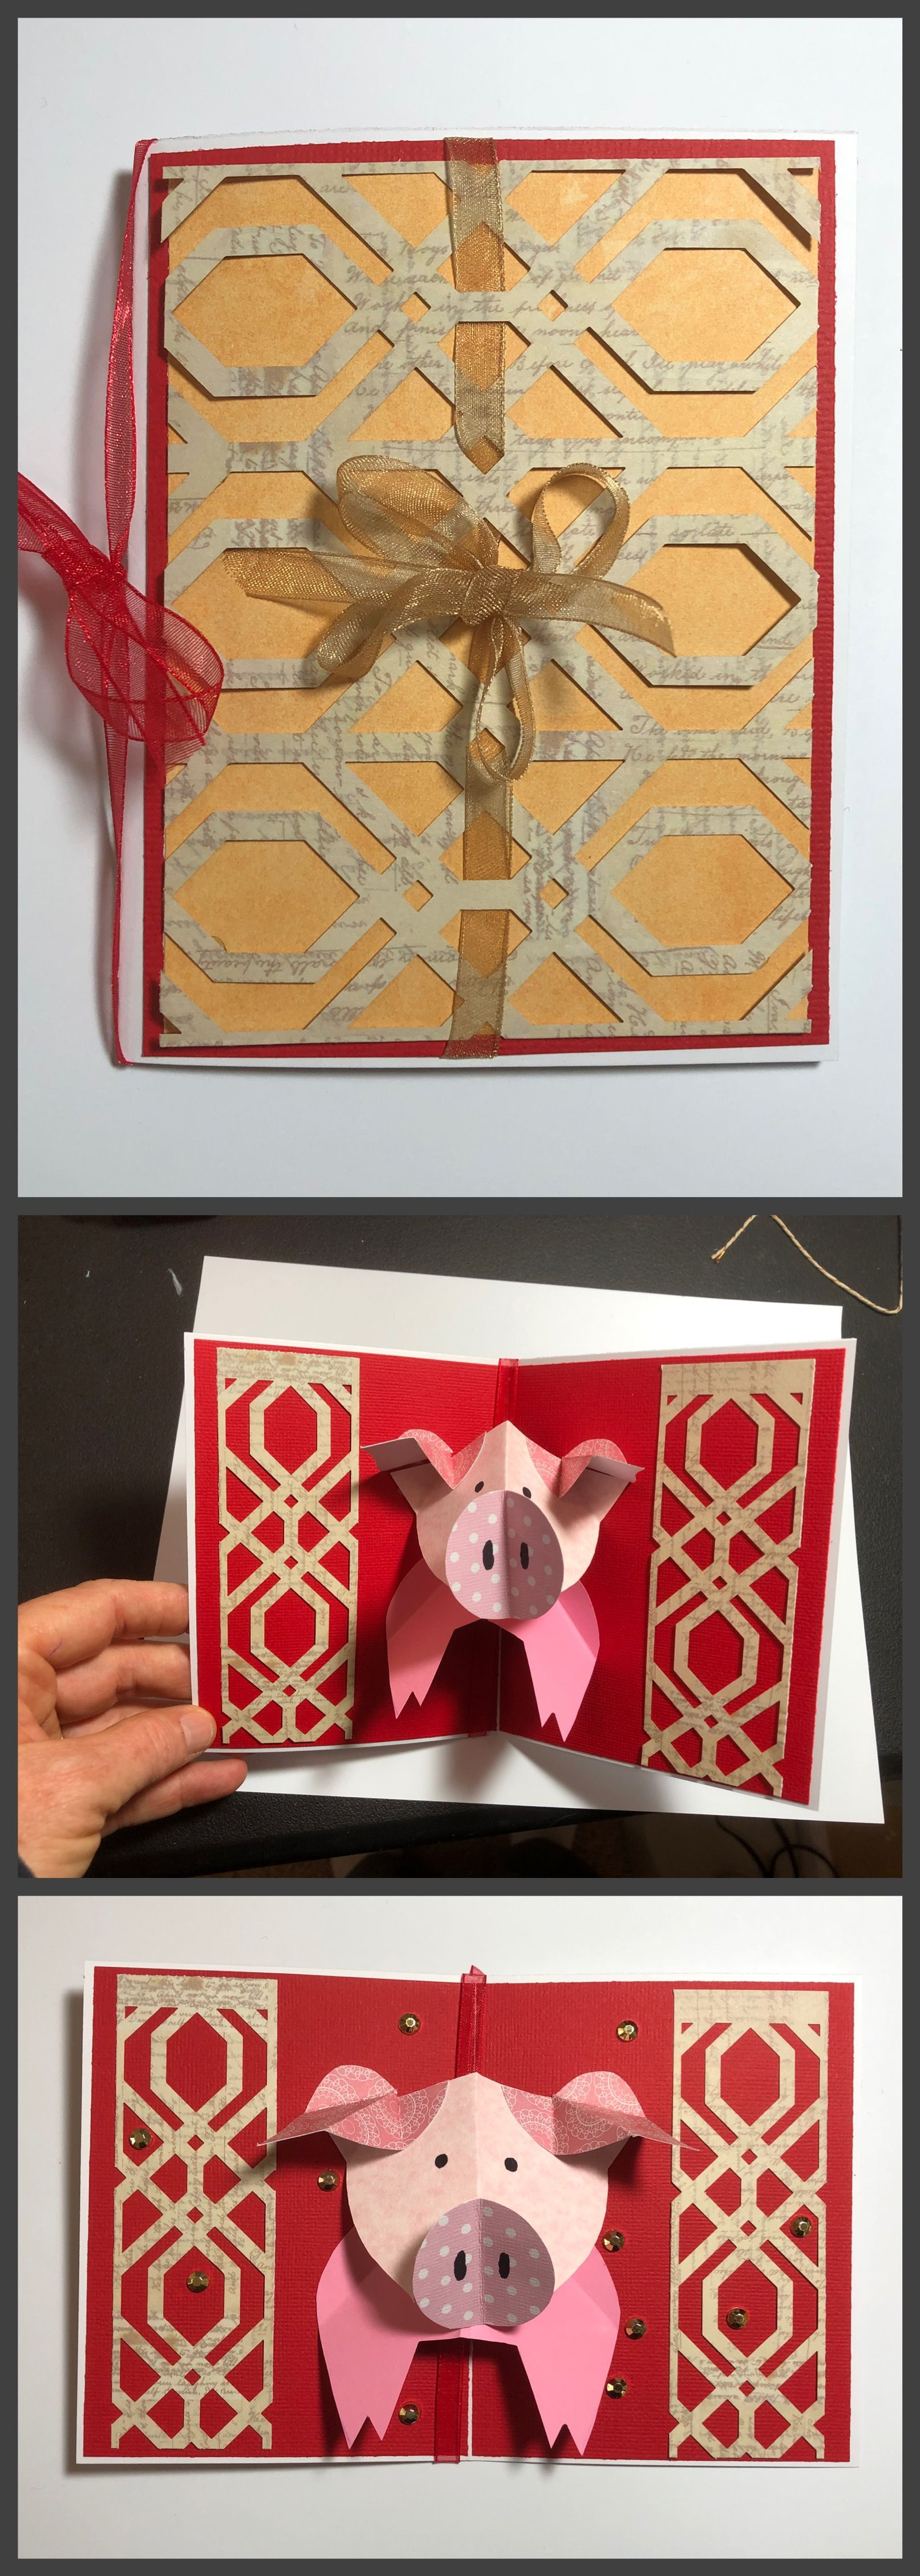 Loving This Very Fun Pop Up Pattern Using It For A 2019 Chinese New Year Card Handmade Greeting New Year Cards Handmade Chinese New Year Card New Year Card